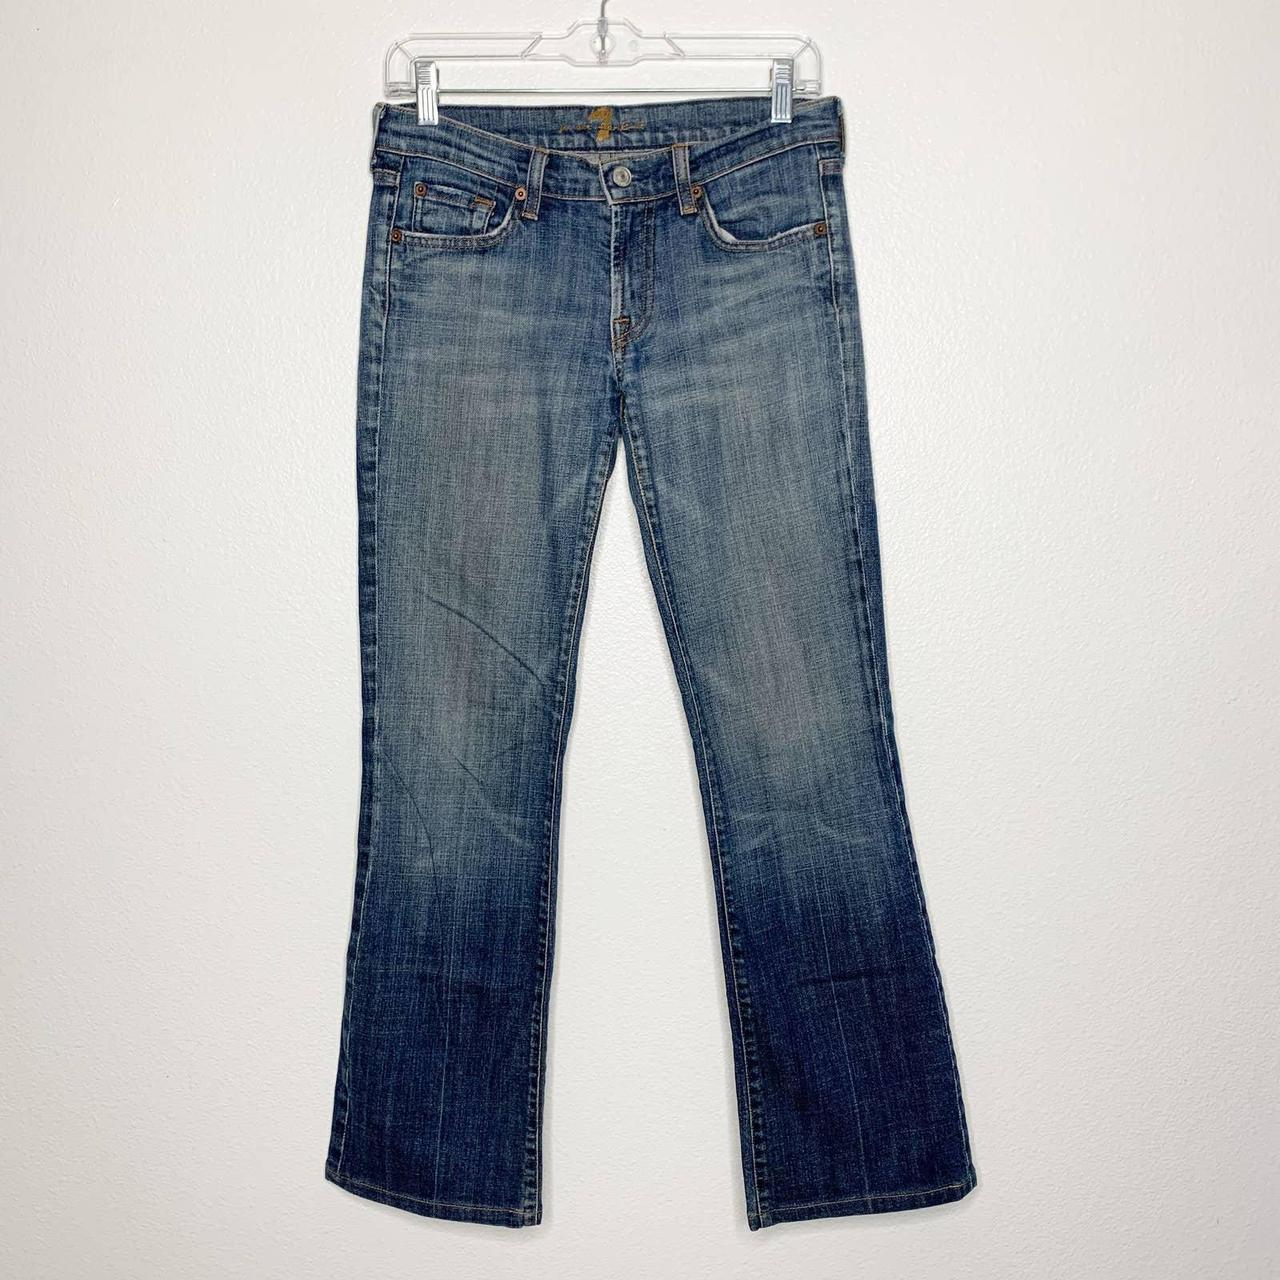 Product Image 1 - 7 FOR ALL MANKIND Bootcut